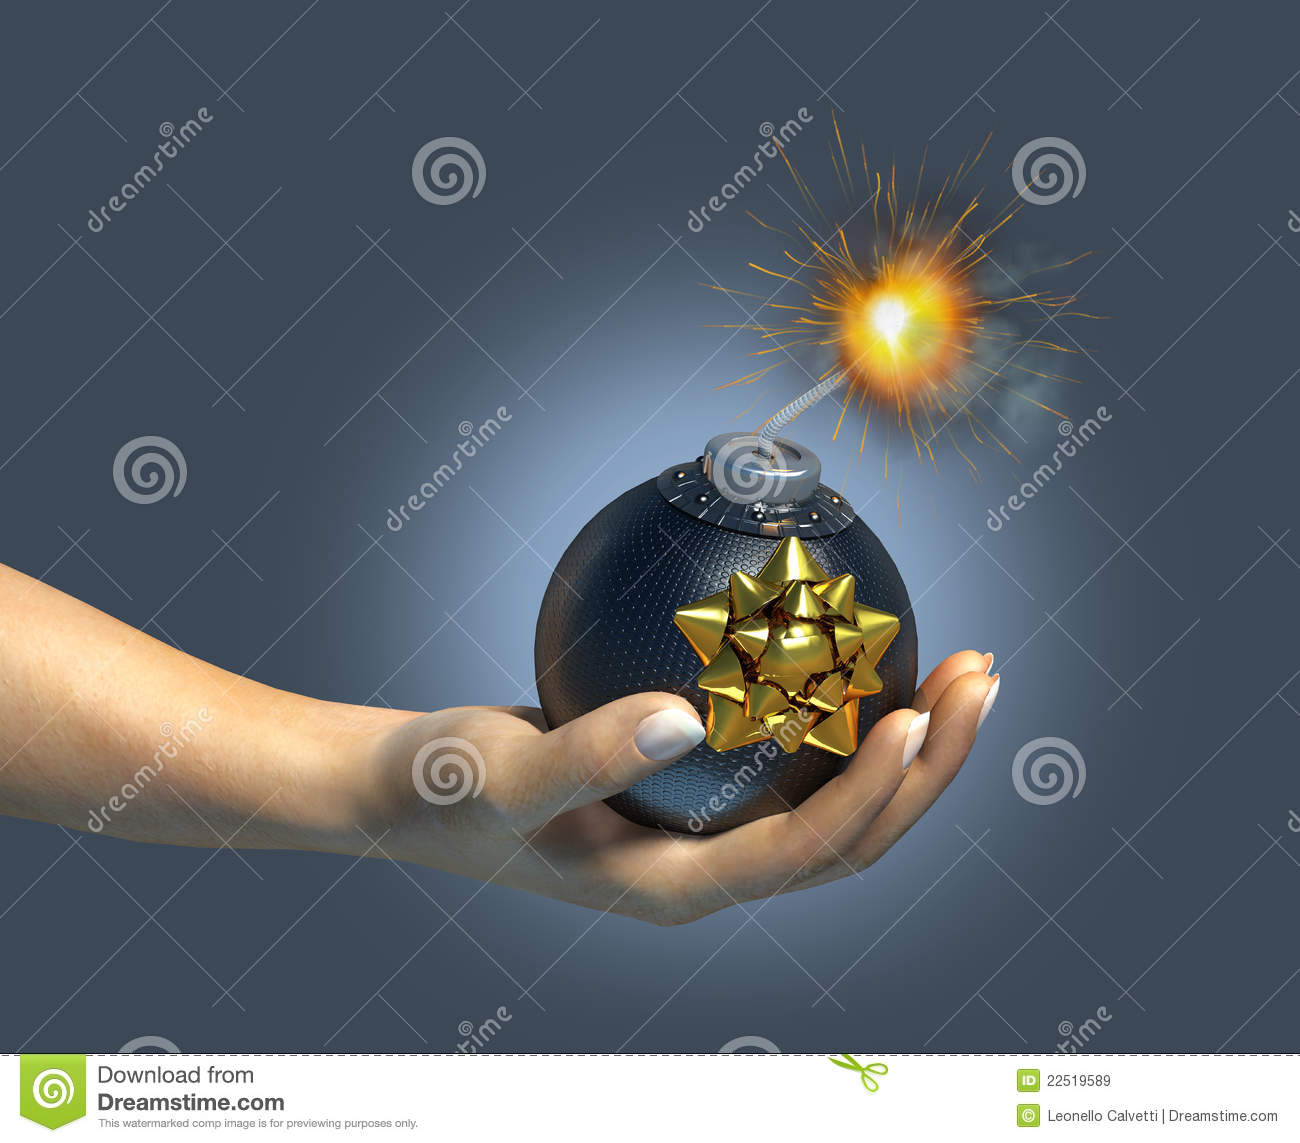 Human hand holding a typical bomb/gift.